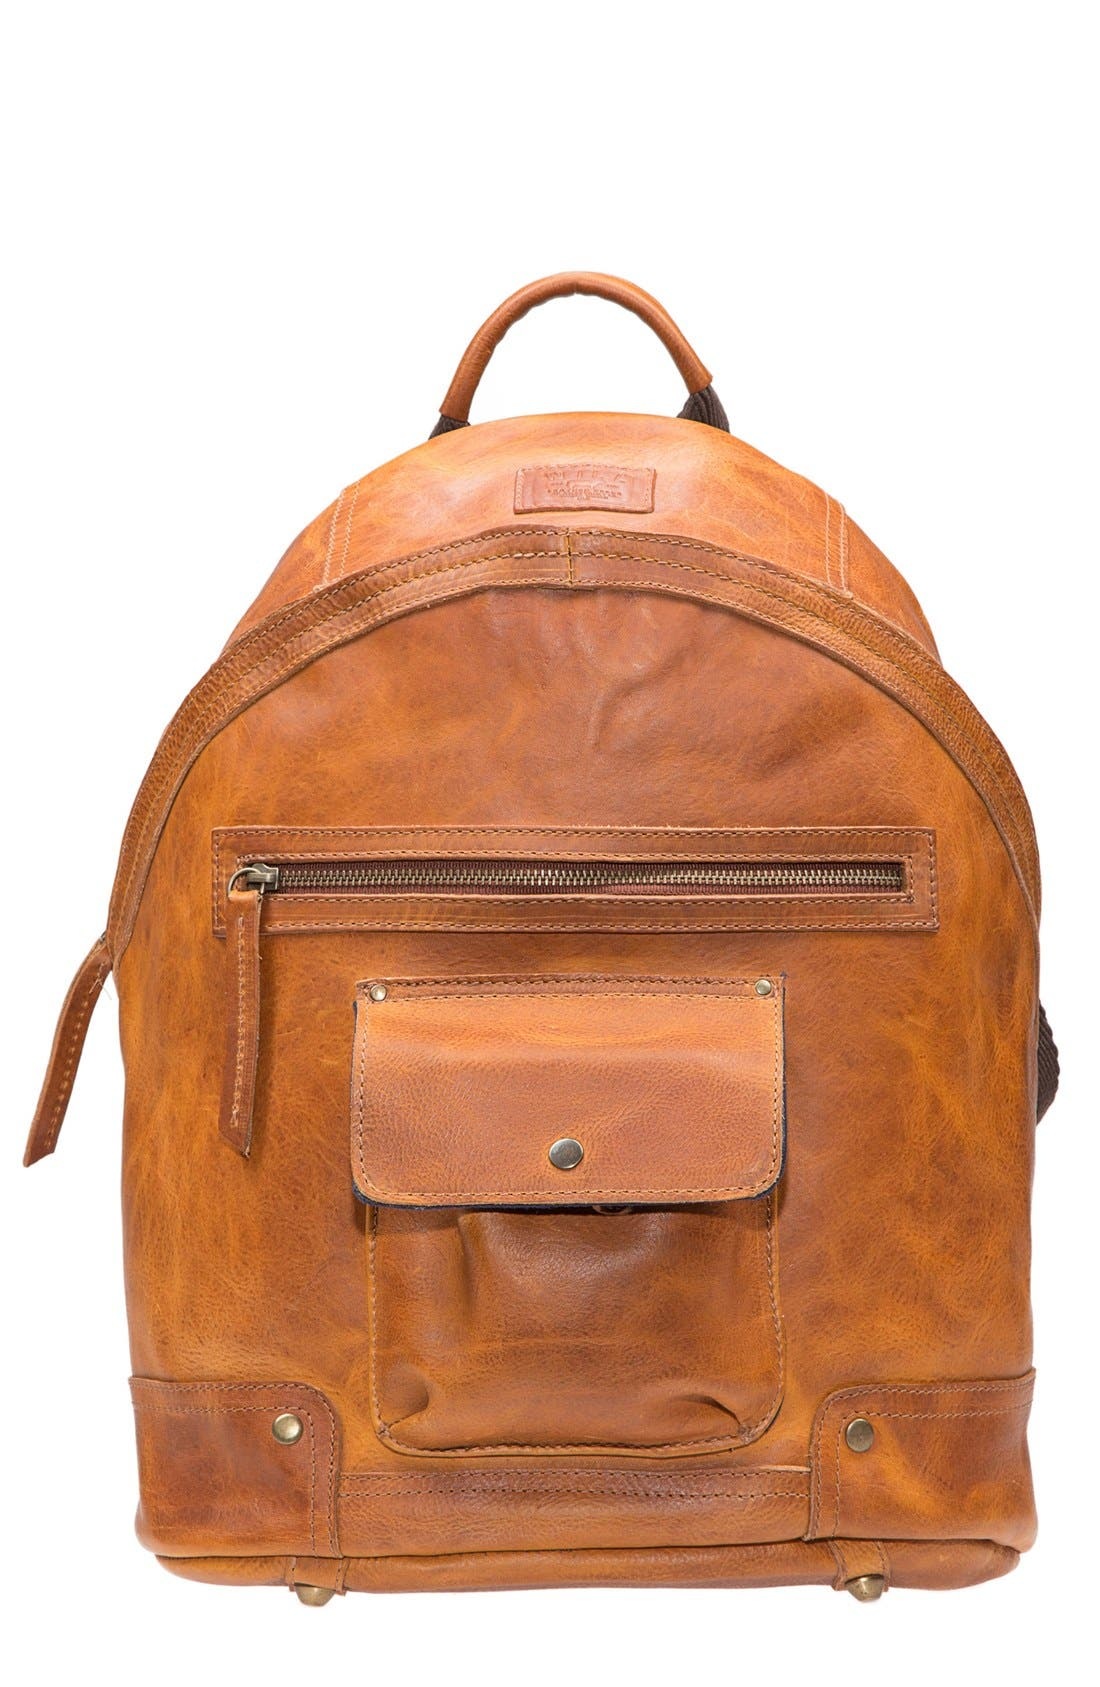 Main Image - Will Leather Goods 'Silas' Backpack